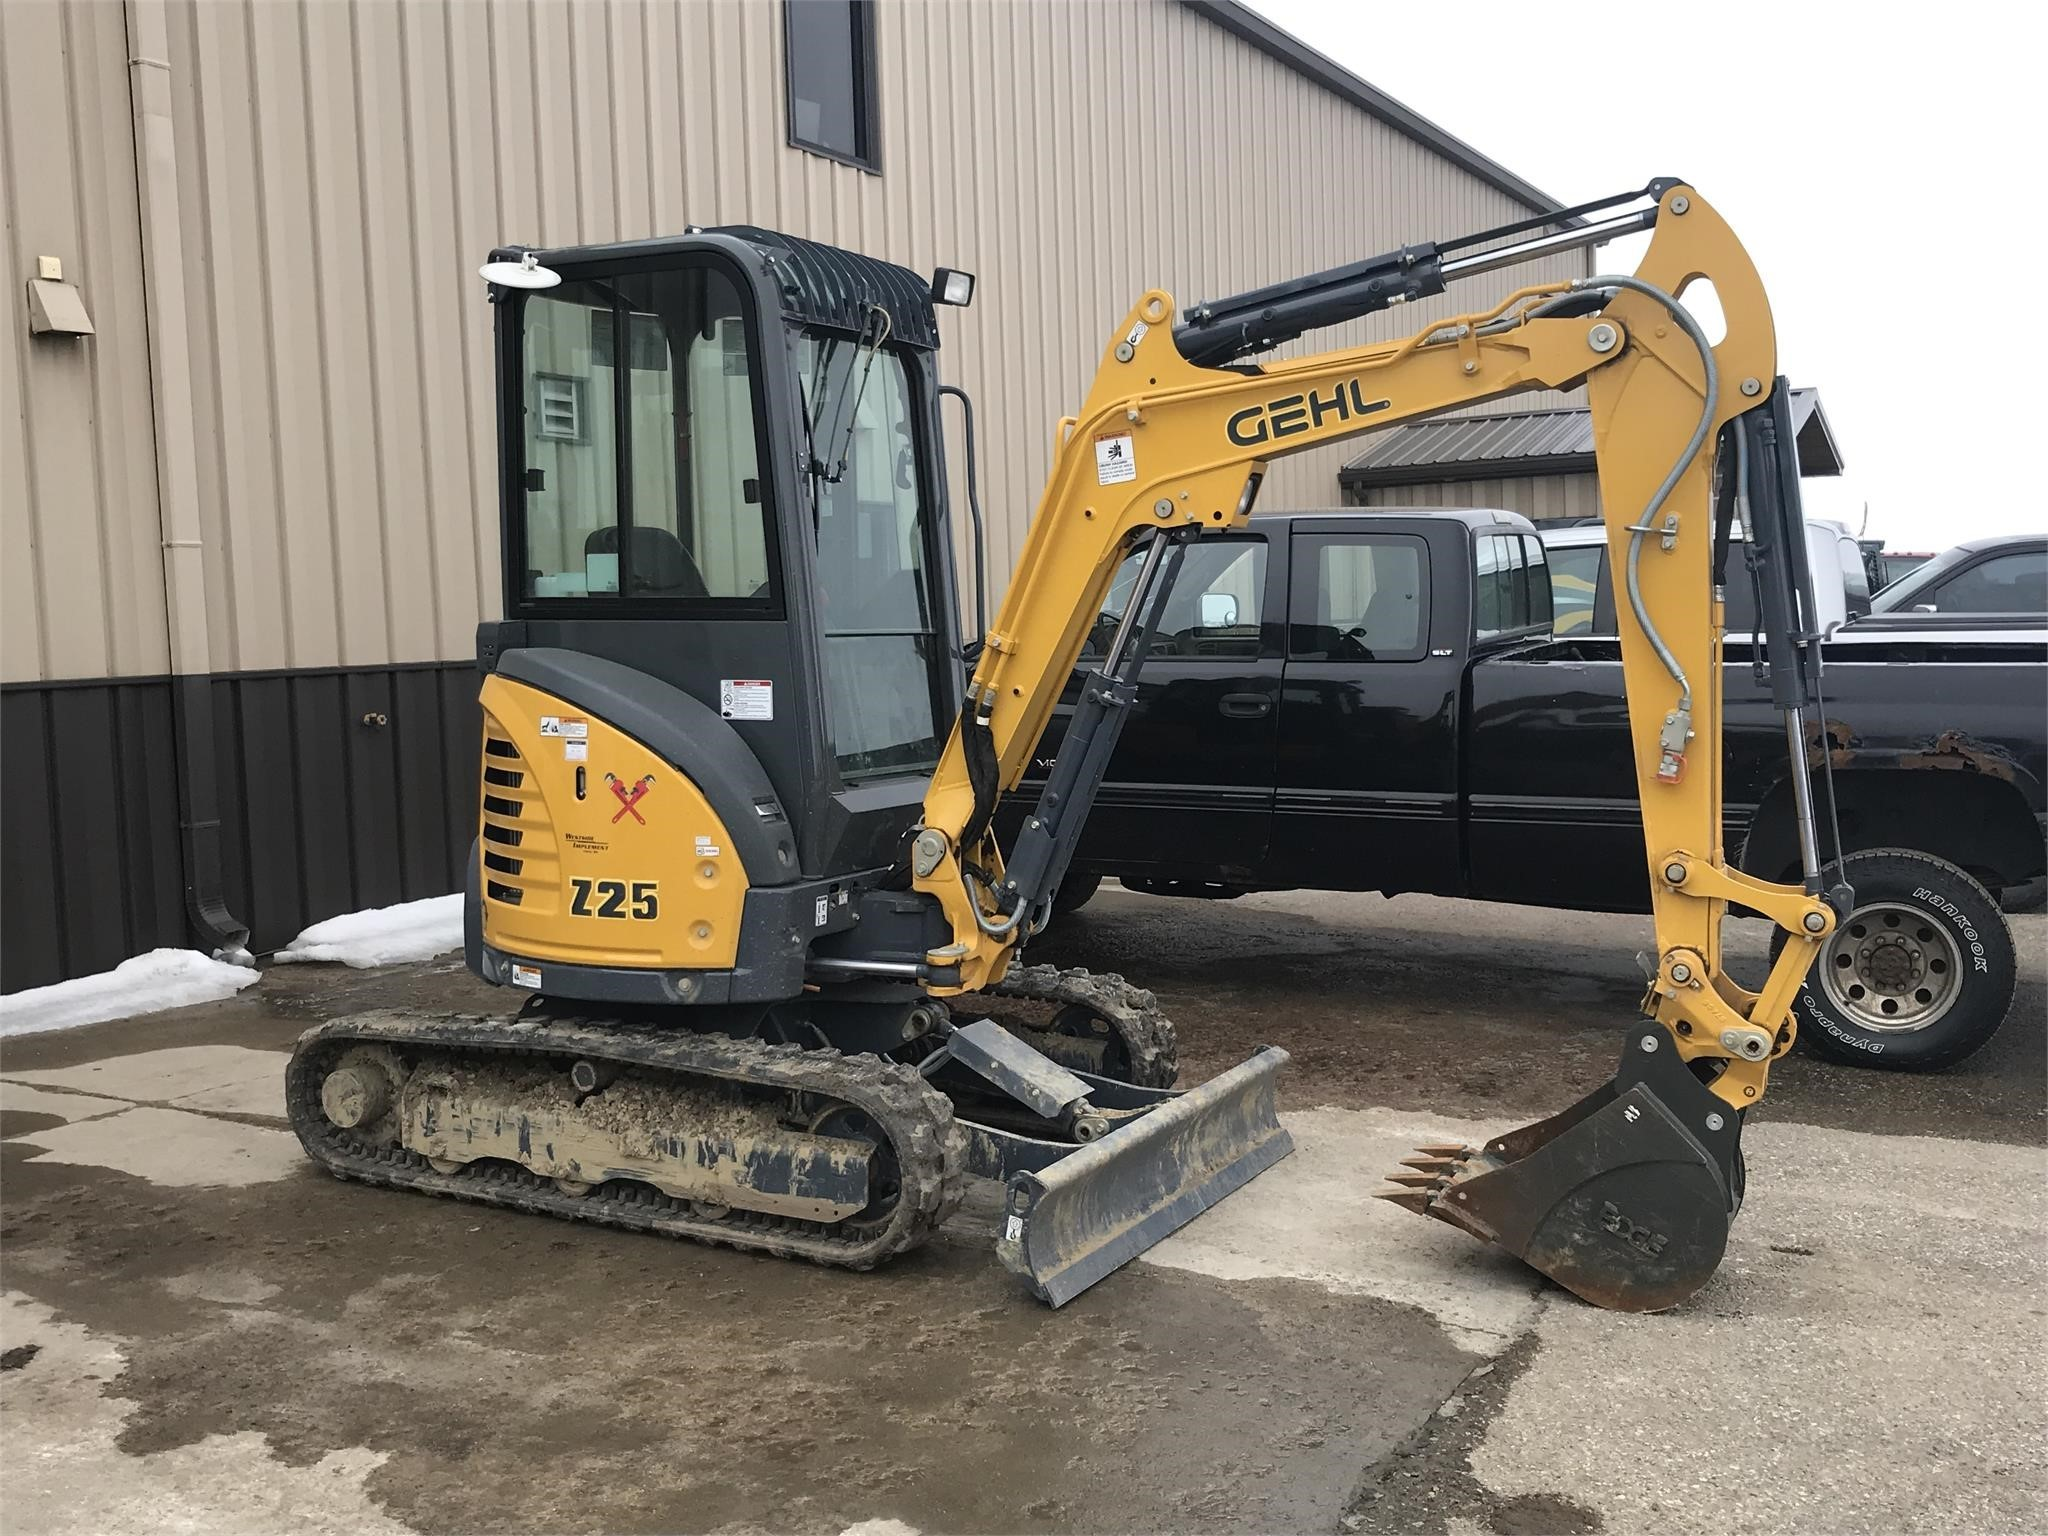 2018 Gehl Z25 Excavators and Mini Excavator